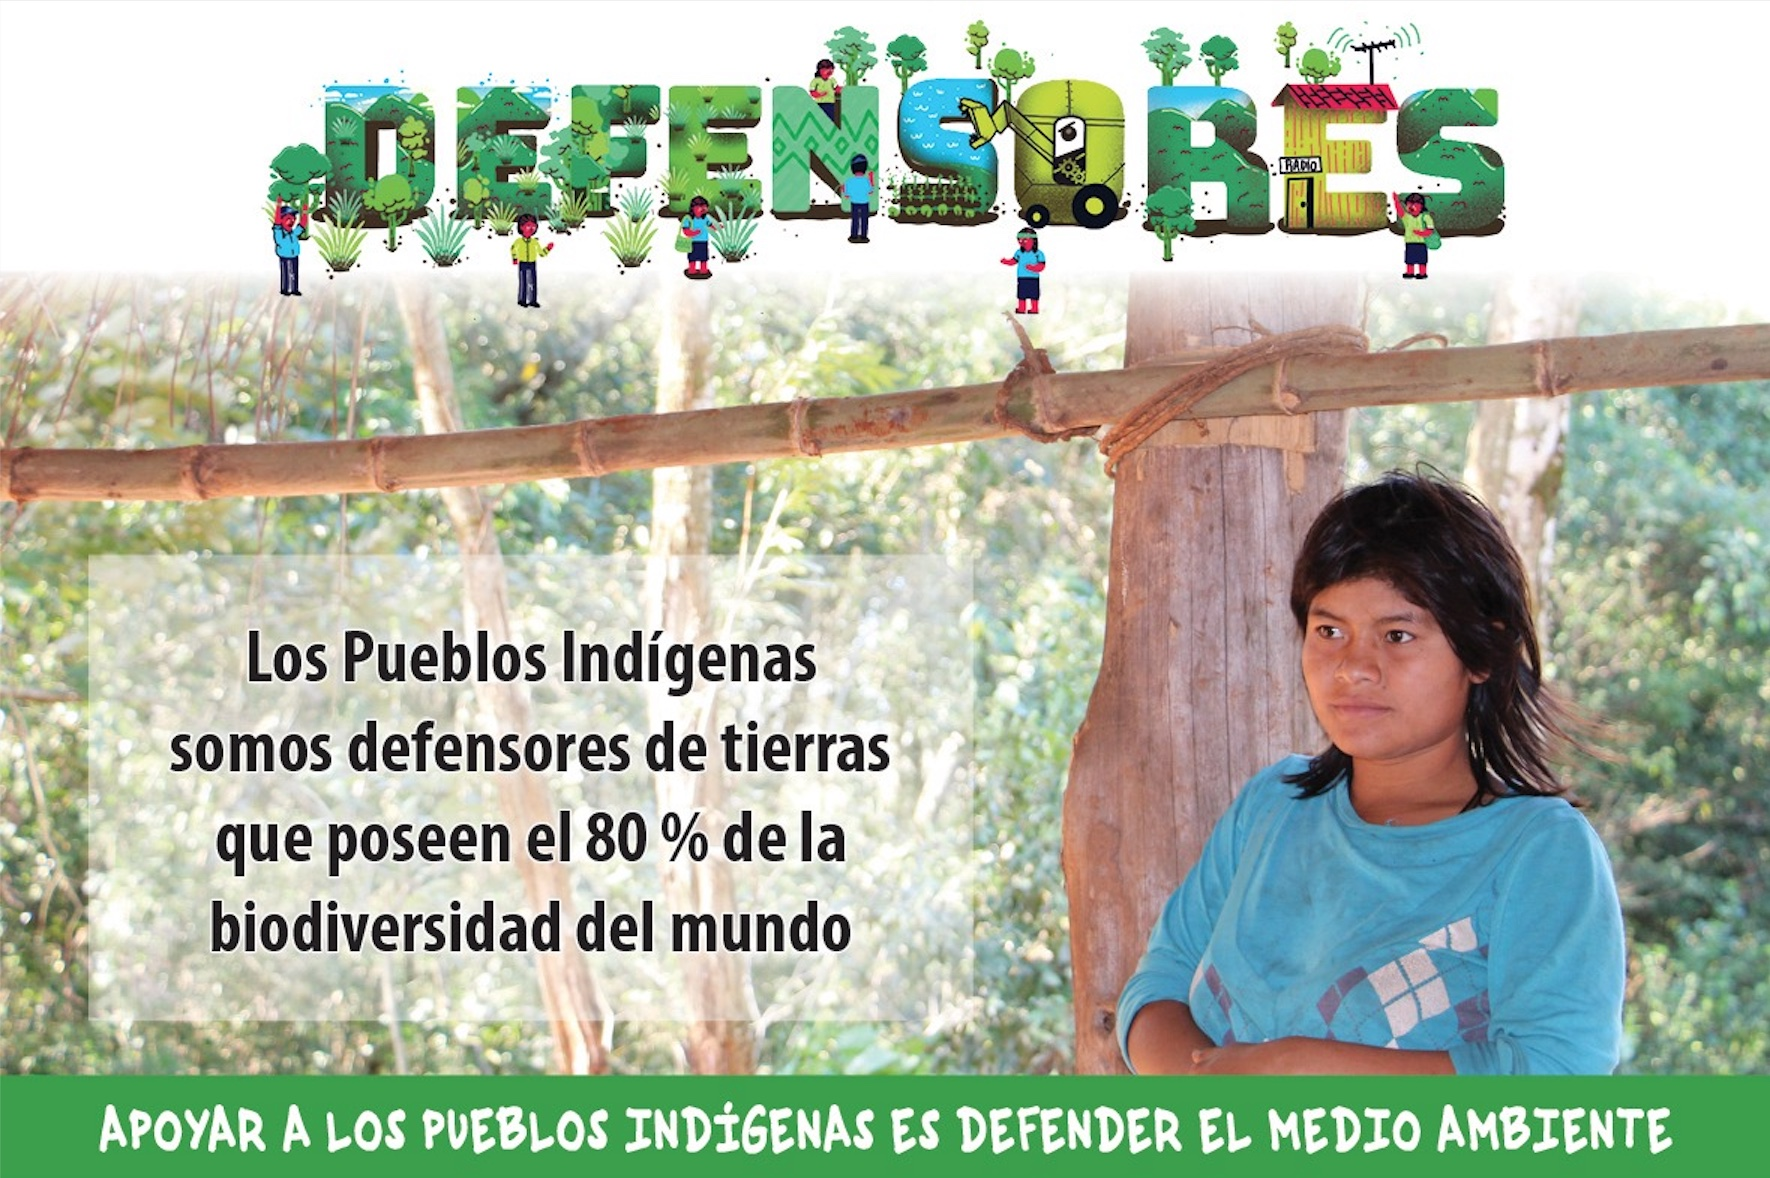 Defending with communities who defend nature: The Indigenous Peoples of Paraguay